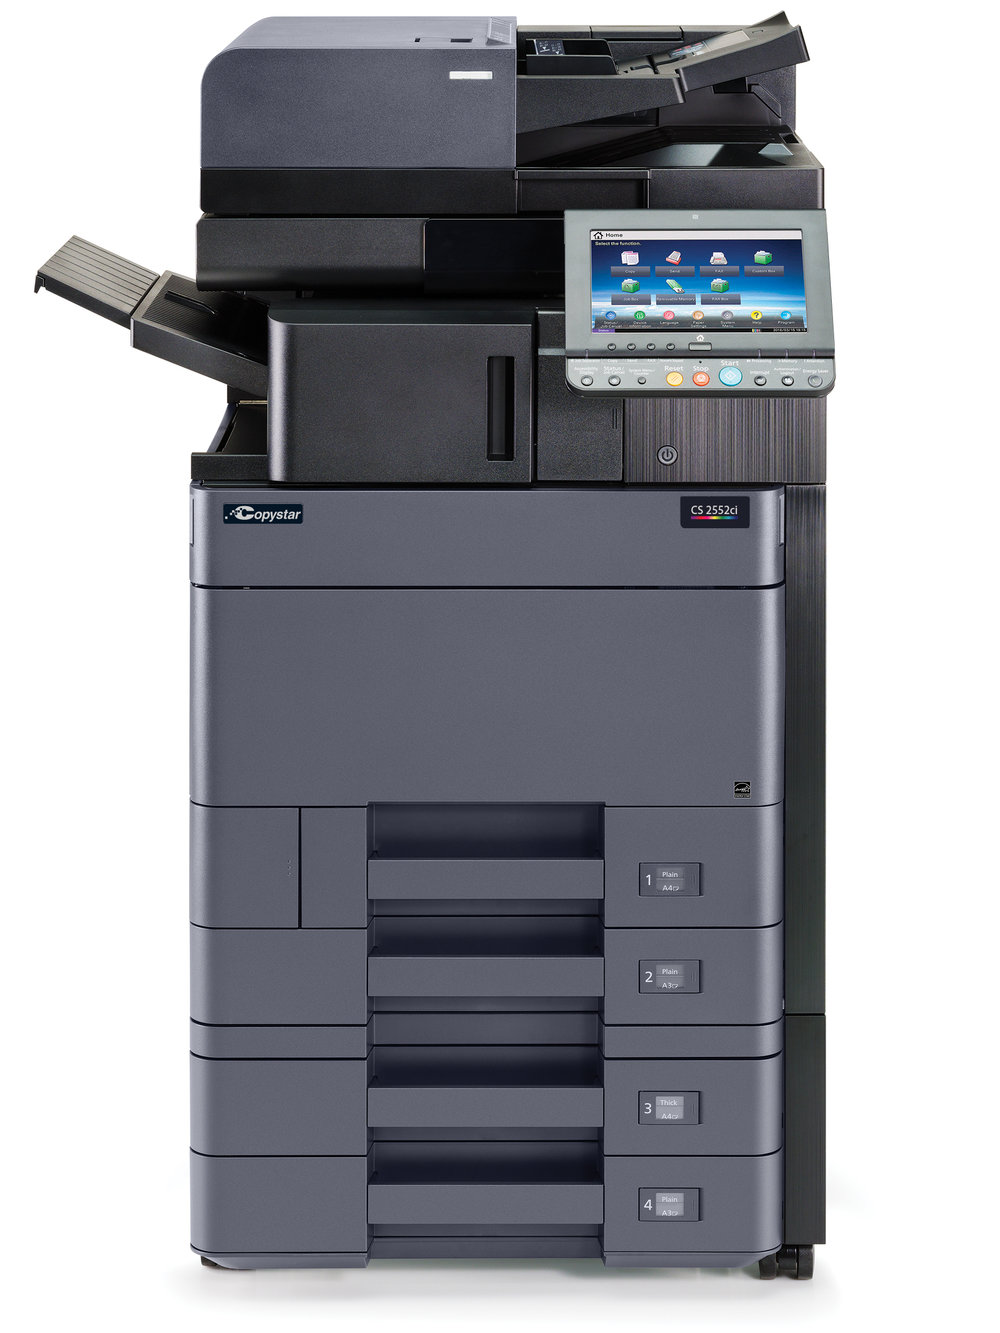 The CS 2552ci with internal finisher and 2 x 500 sheet cassettes